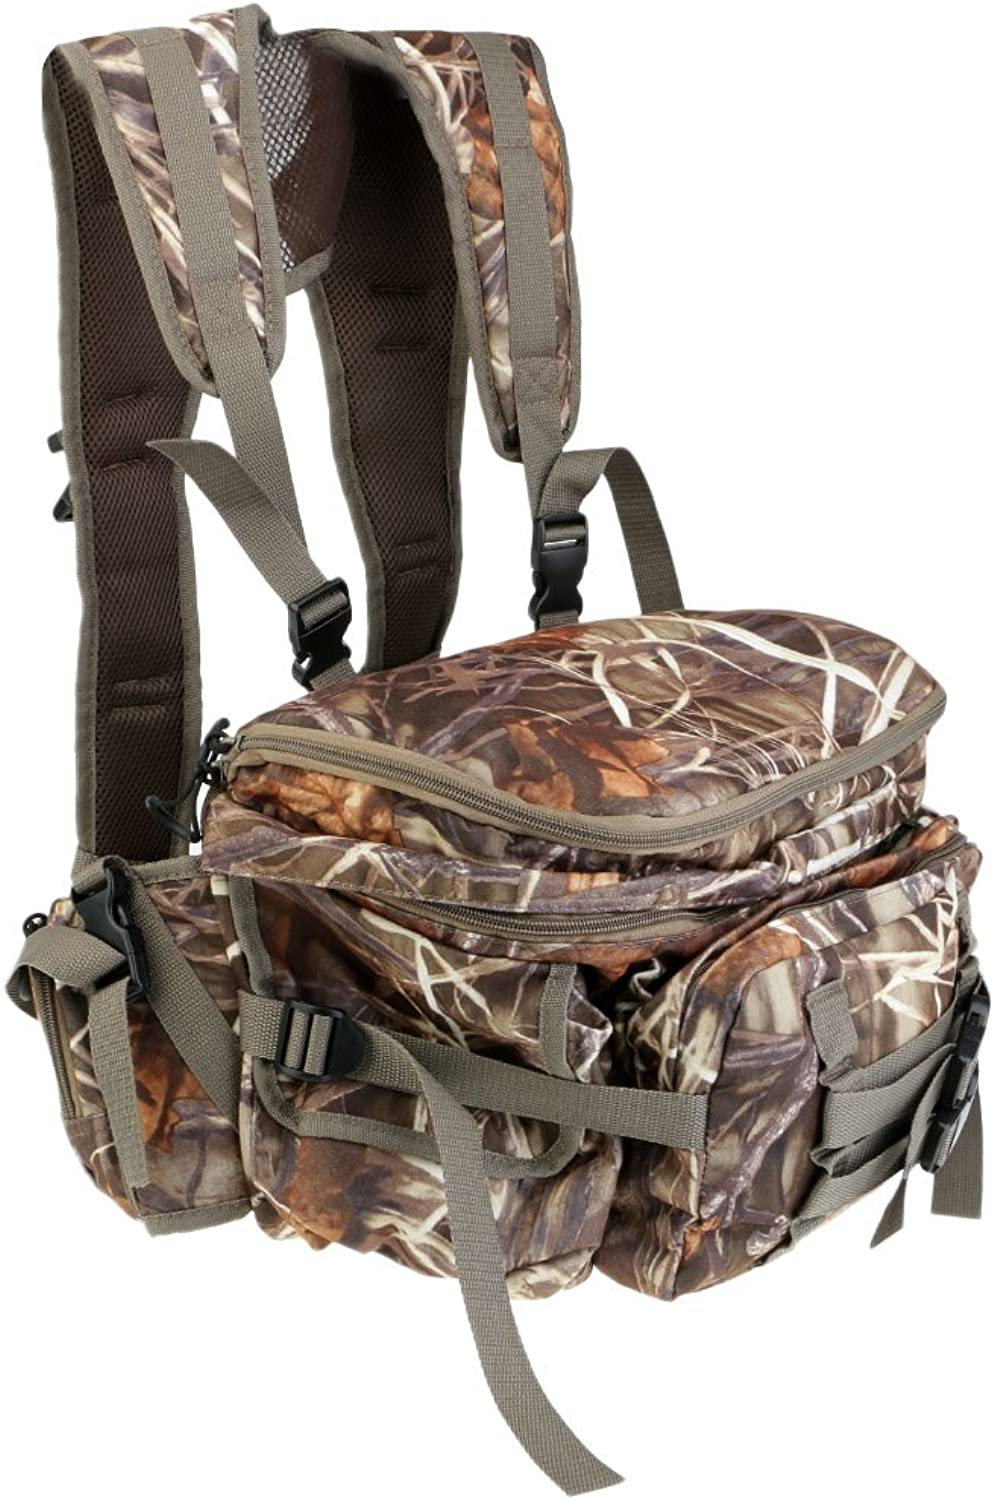 D DOLITY Outdoor Travel Hiking Sport Rucksack Day Pack Removable Hunting Archery Backpack Bag